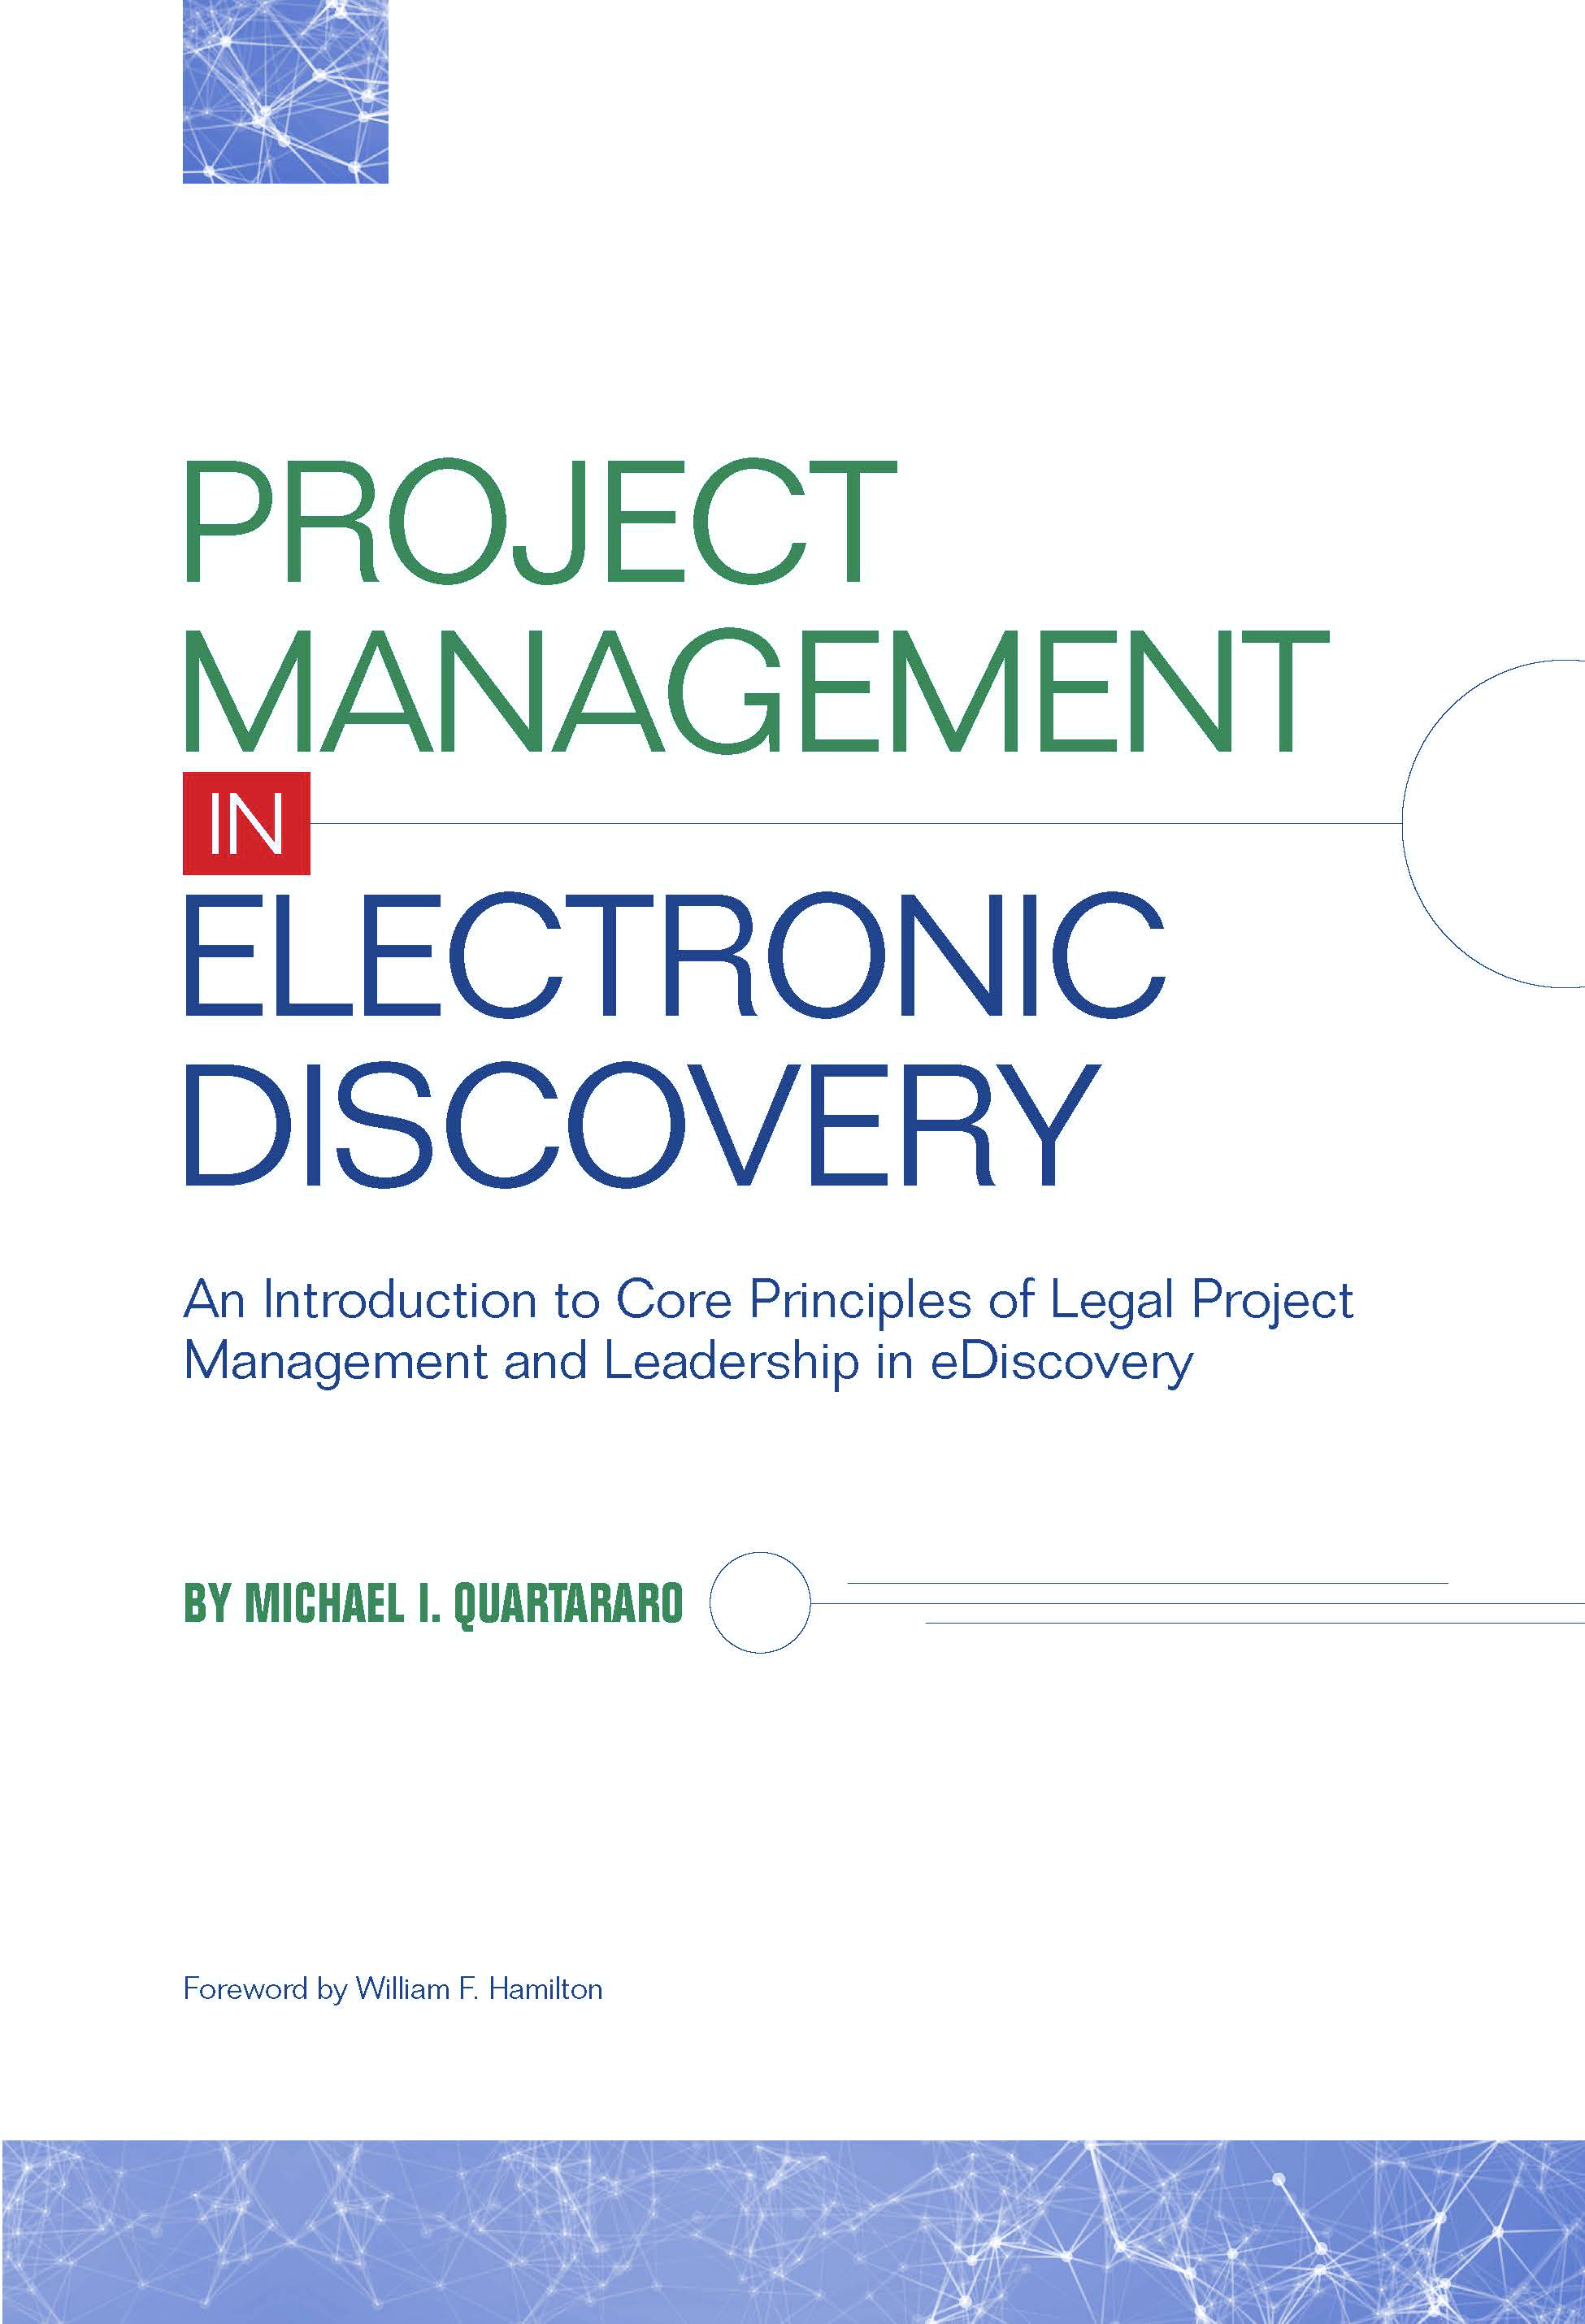 Project Management in Electronic Discovery